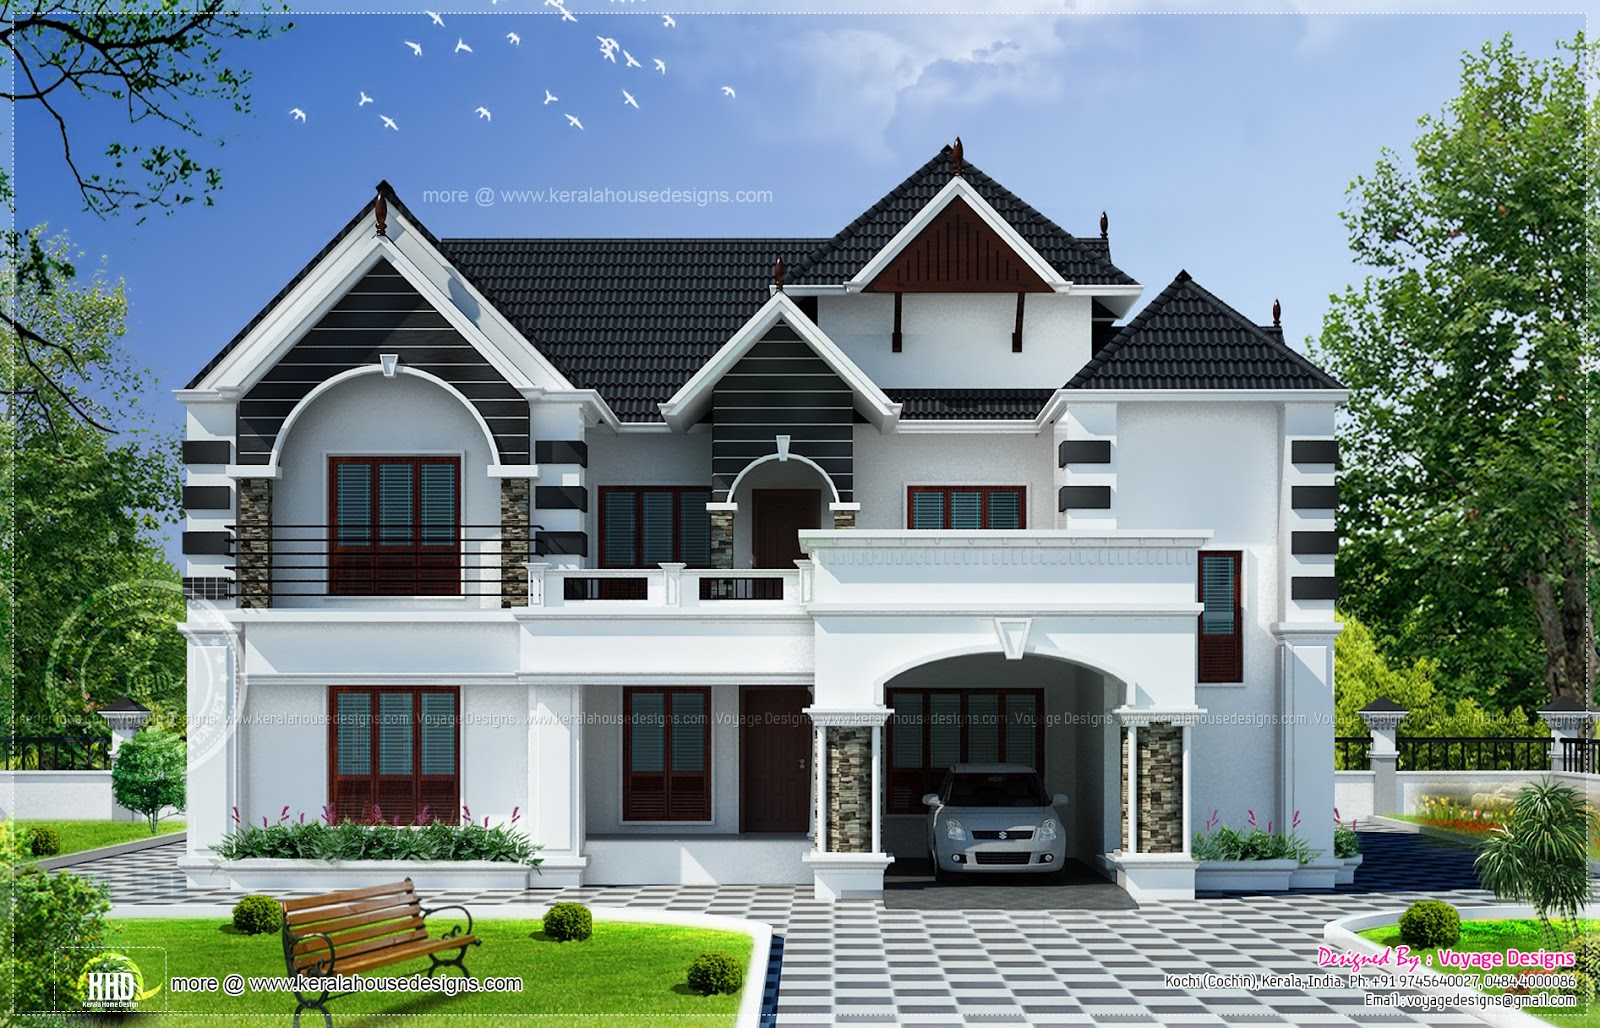 4 bedroom colonial style house kerala home design and for House plans in kerala with 2 bedrooms